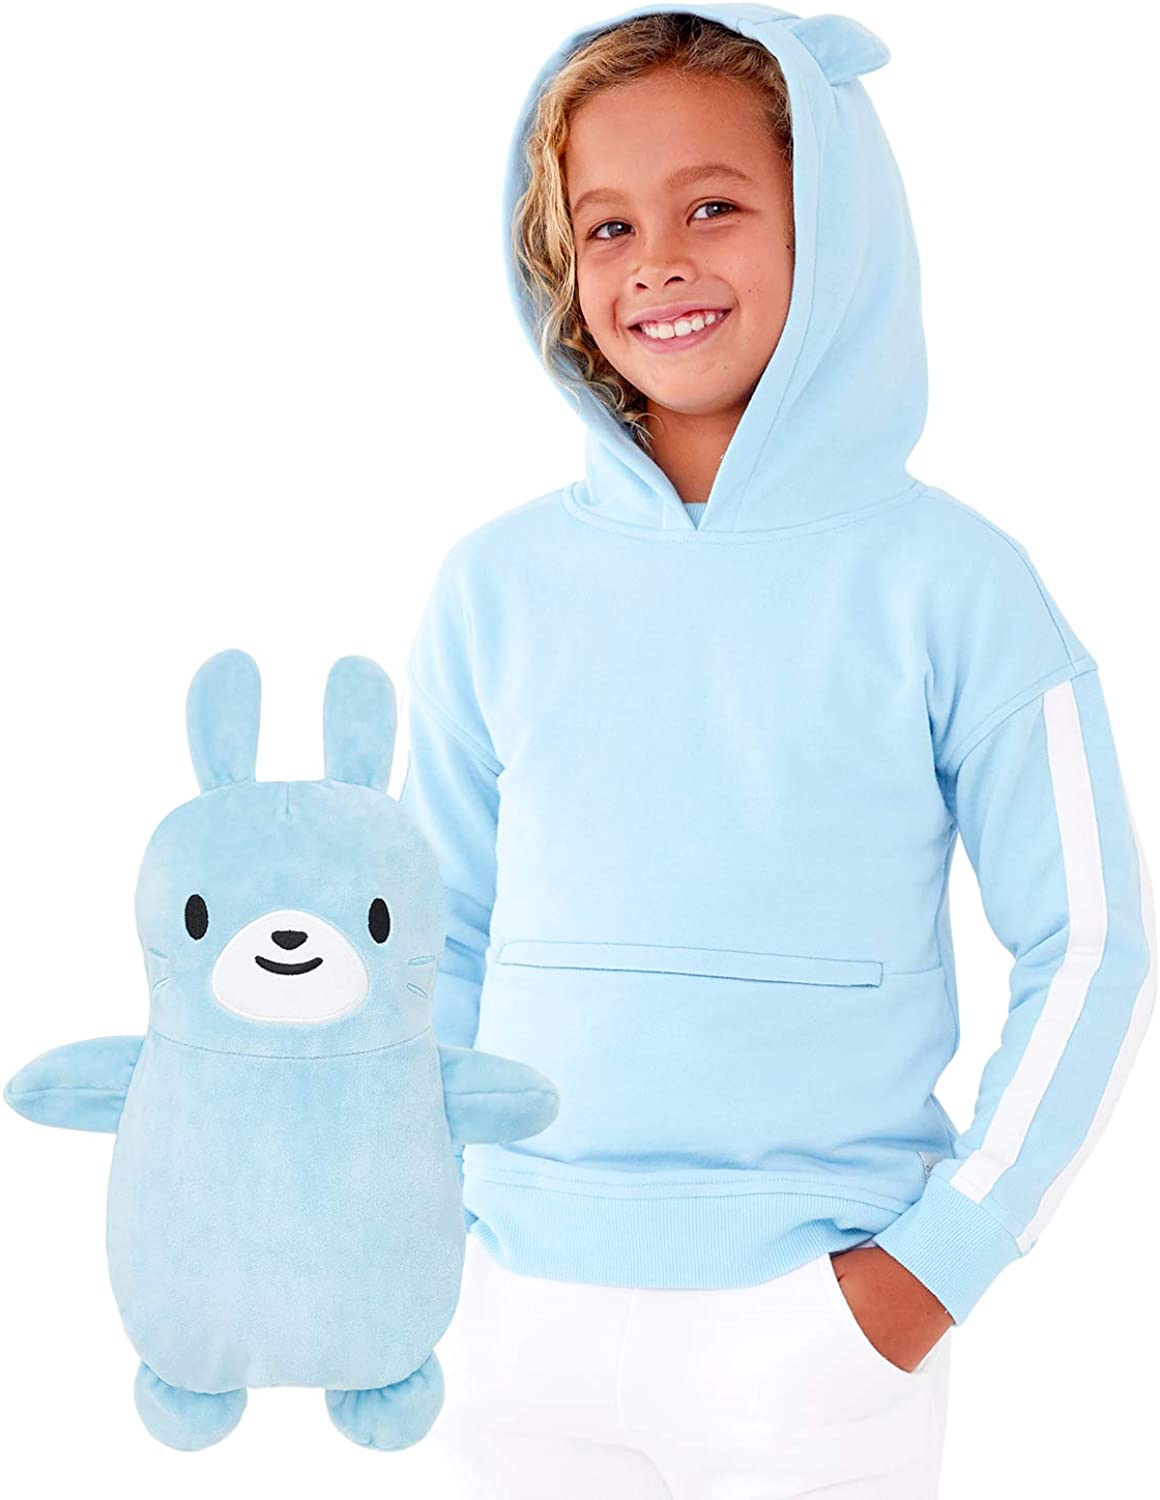 Cubcoats Kids Transforming San Jose Mall 2 Max 43% OFF in Hood Pullover with 1 Sweatshirt